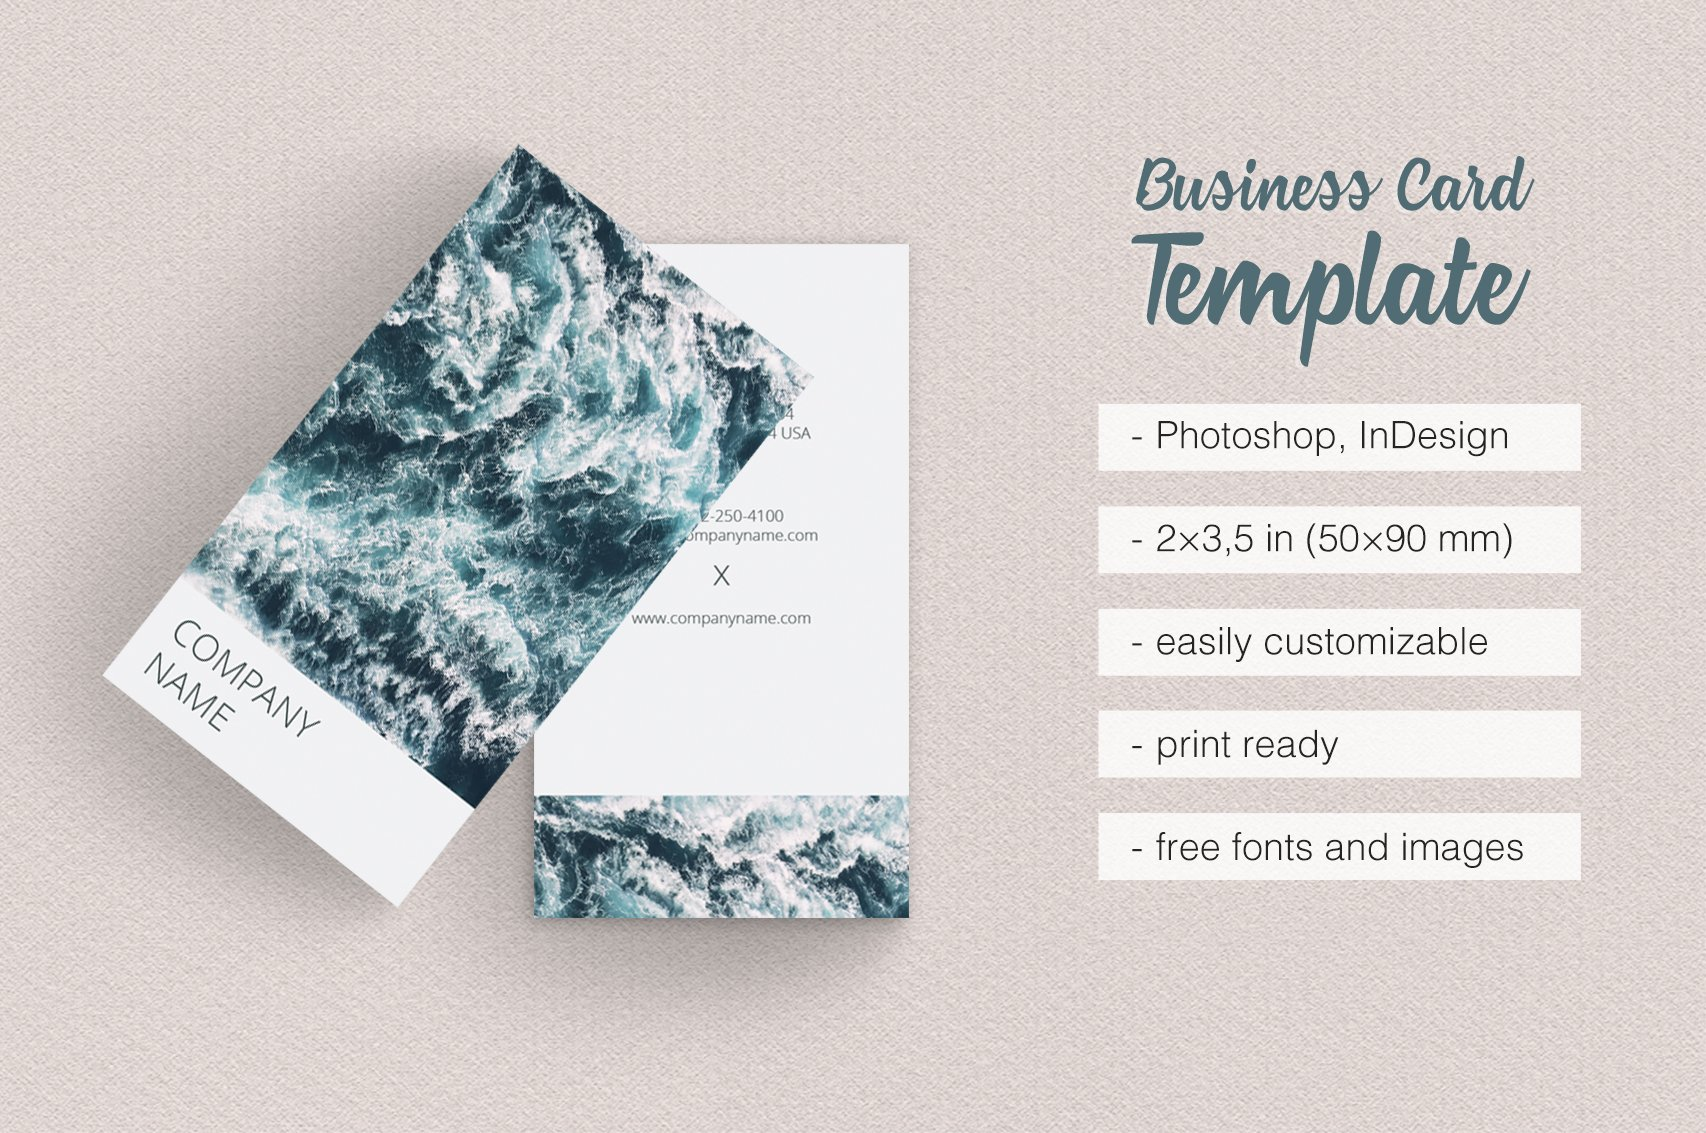 Boho business card photos graphics fonts themes templates vertical photographer business card cheaphphosting Image collections